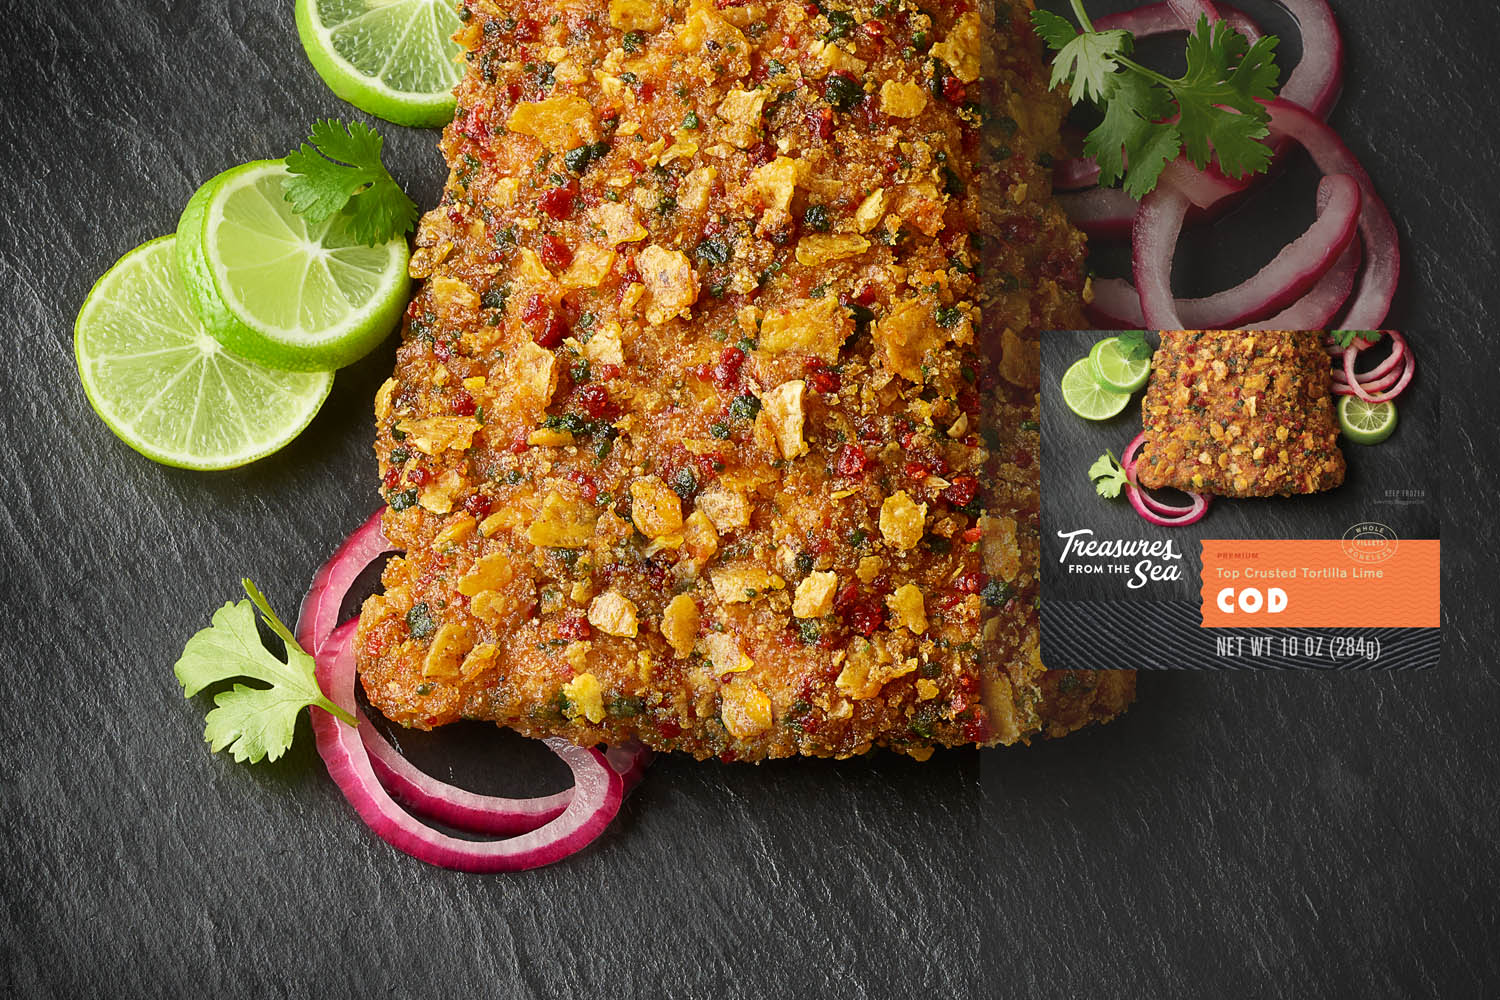 TOP CRUSTED TORTILLA LIME COD